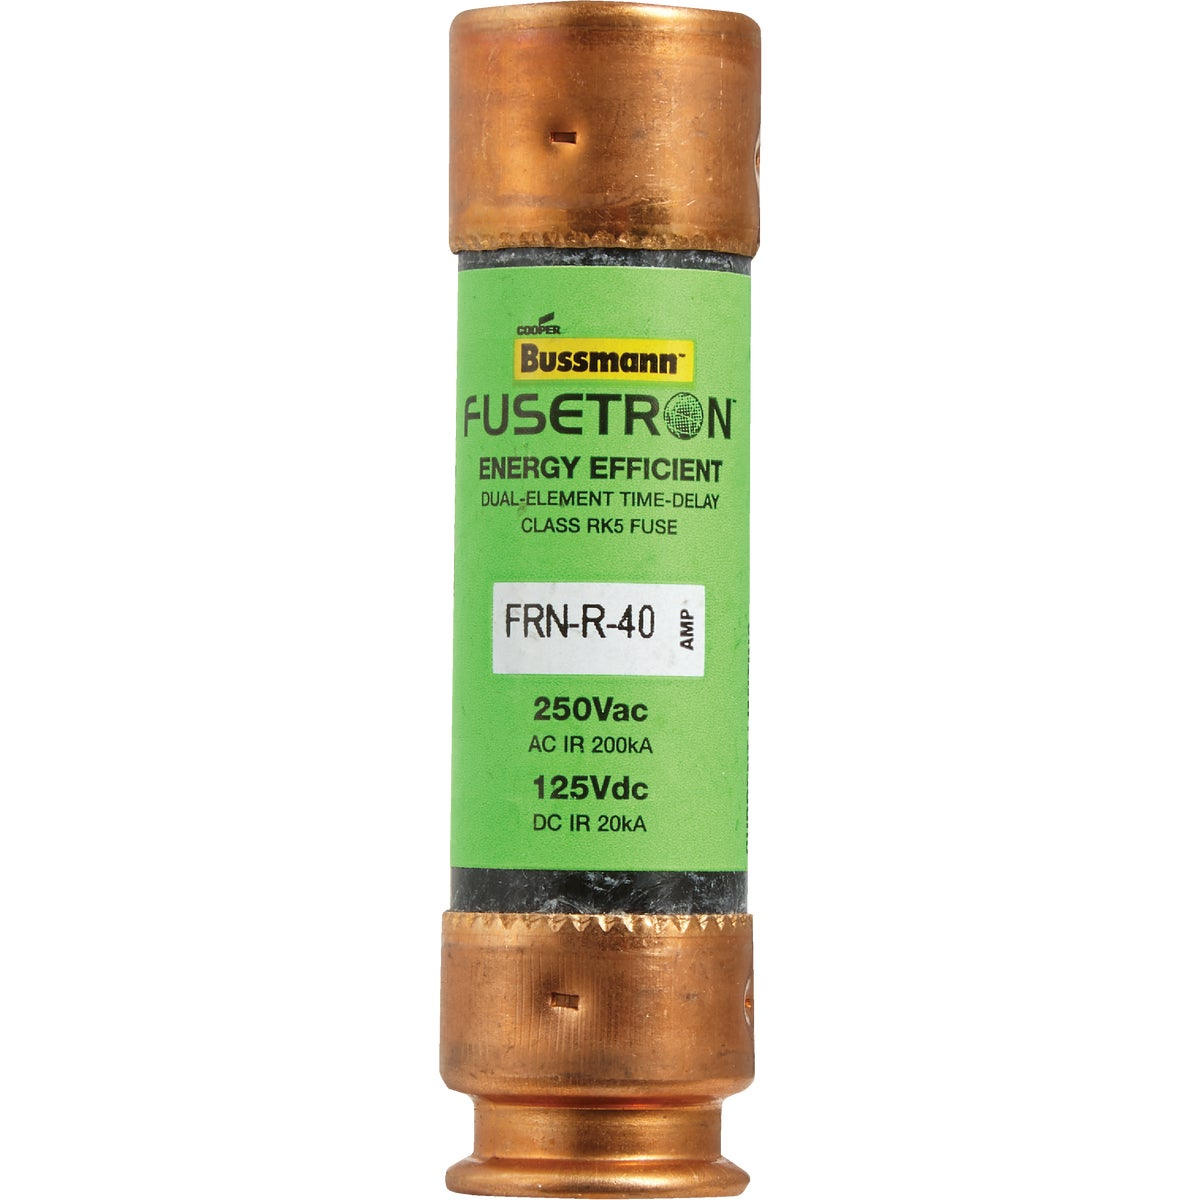 40A CARTRIDGE FUSE - FRN-R-40 by Bussmann Cooper